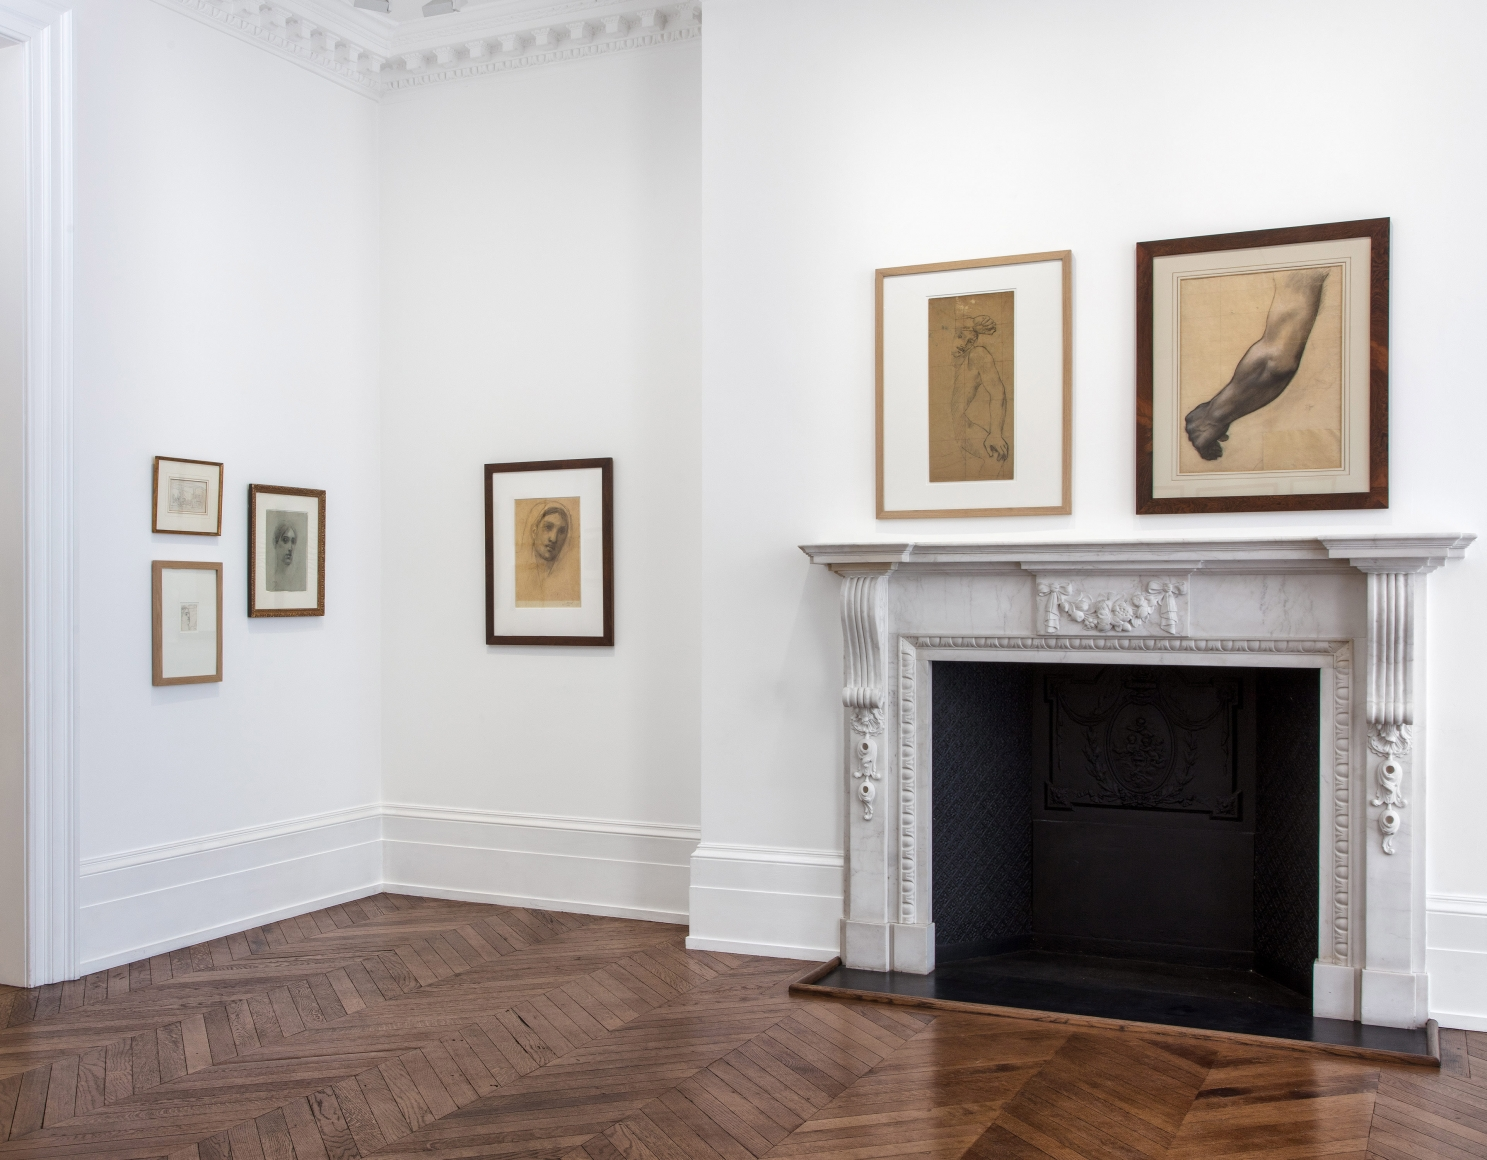 PIERRE PUVIS DE CHAVANNES, Works on Paper and Paintings, London, 2018, Installation Image 6